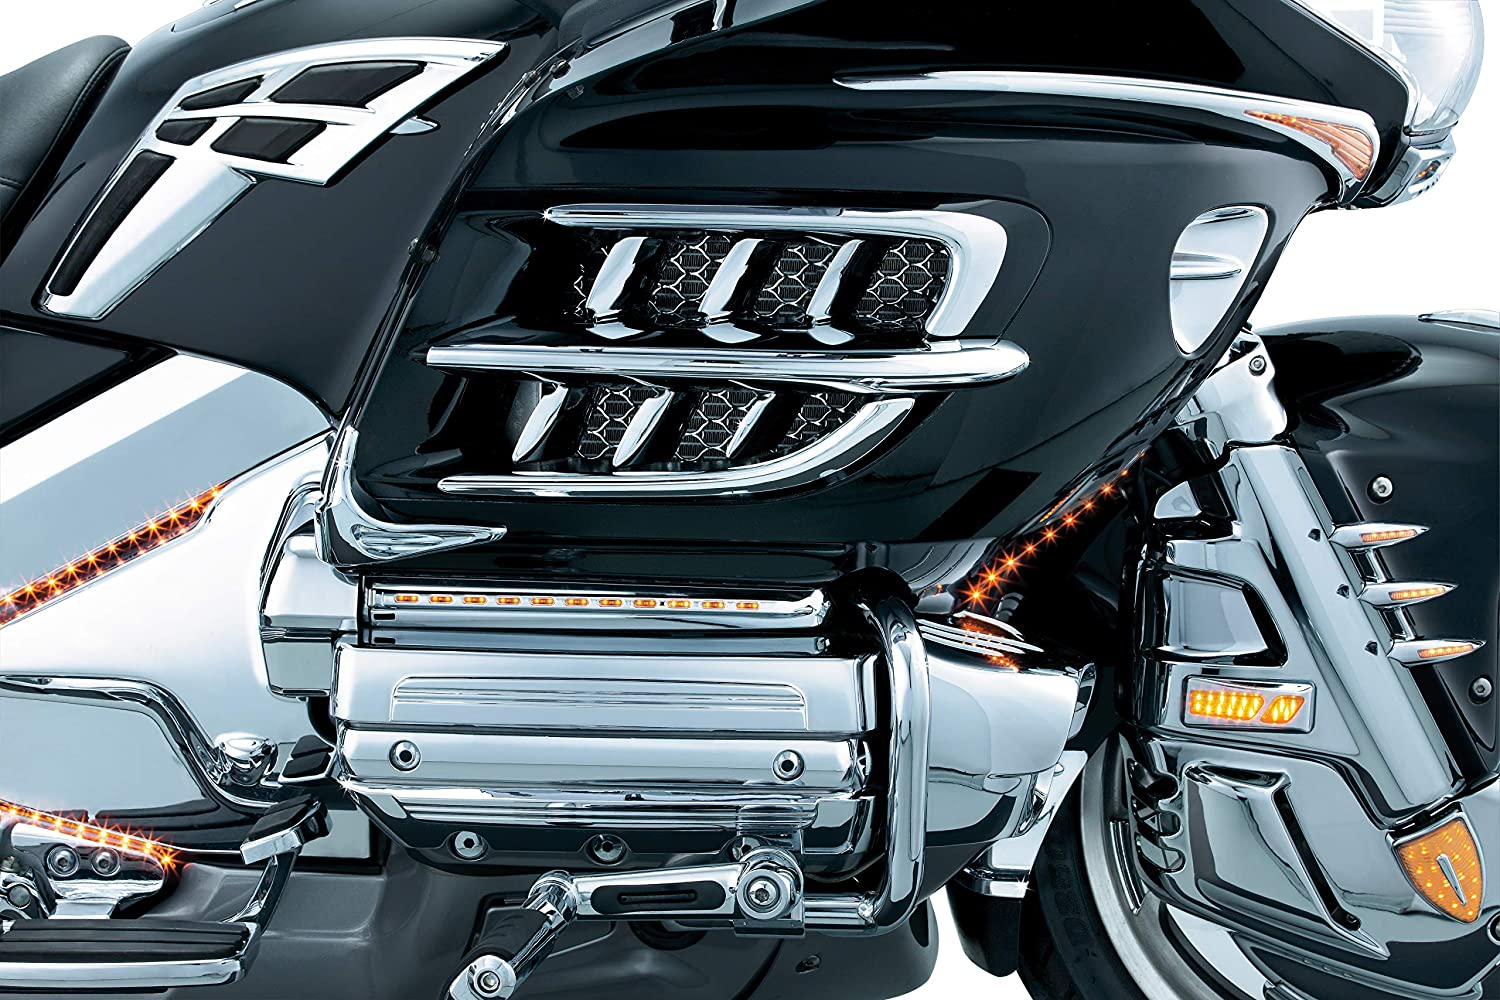 Kuryakyn 7319 Motorcycle Accent Accessory Premier Shark Gills with Radiator Vent Trim for 2001-10 Honda Gold Wing GL1800 Motorcycles Chrome